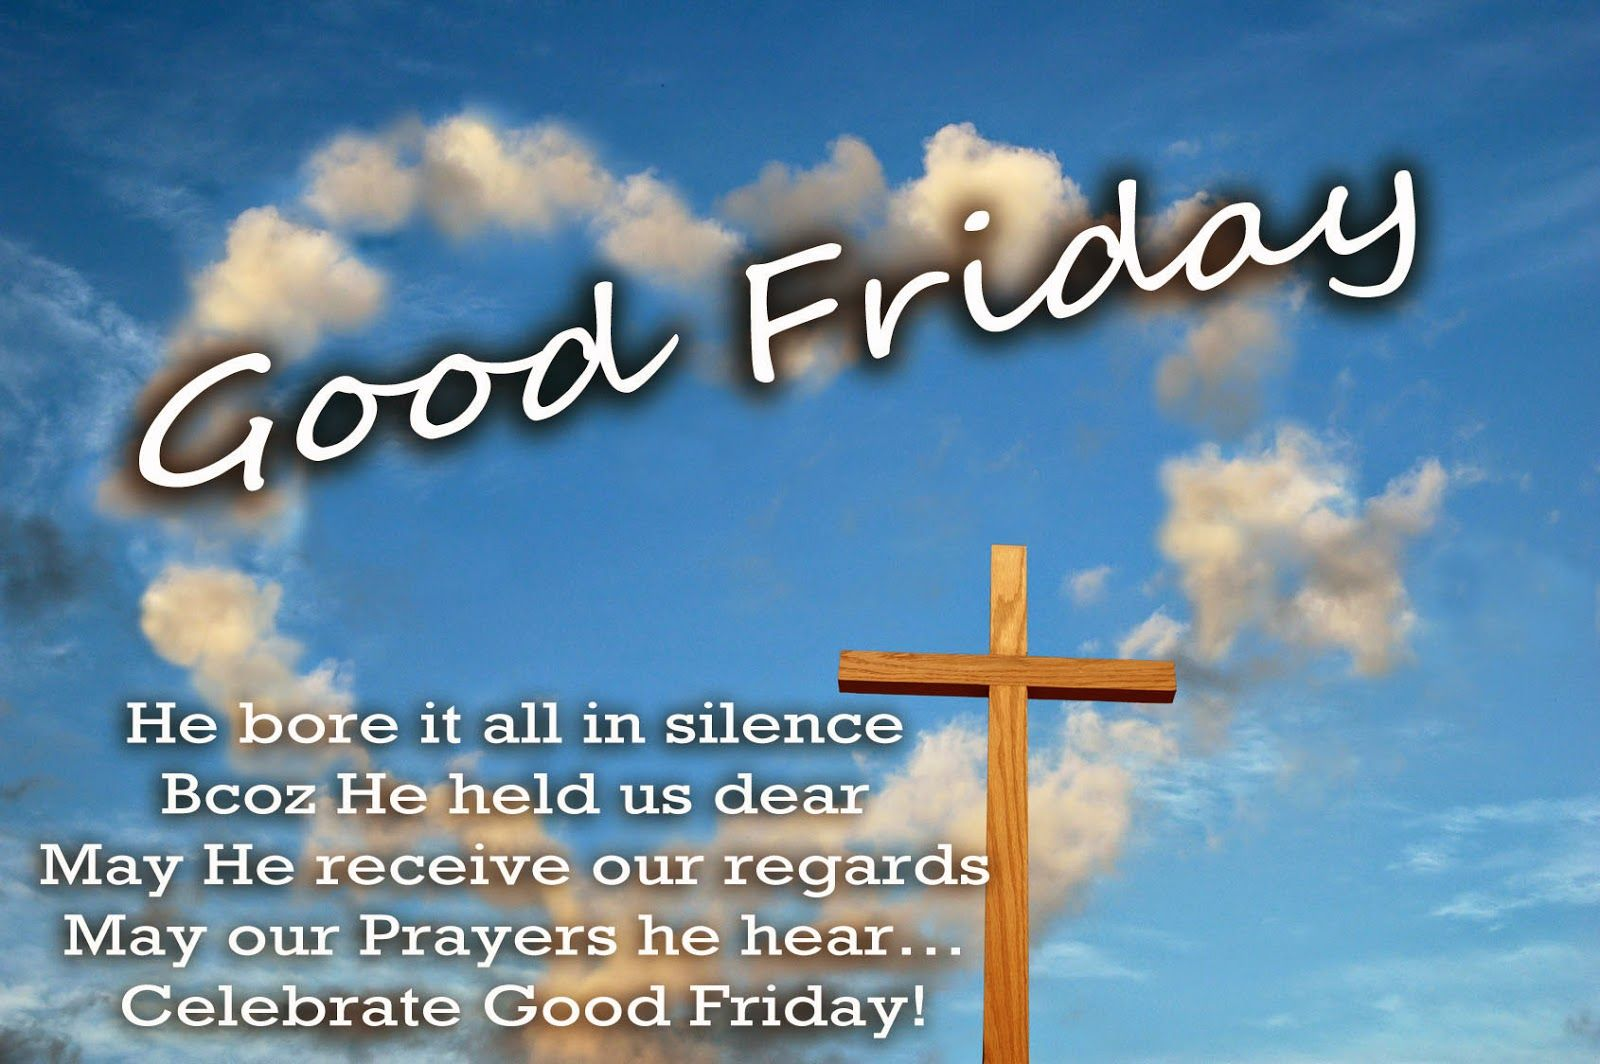 good-friday-quotes.jpg (1600×1064) | Good friday images, Good ...